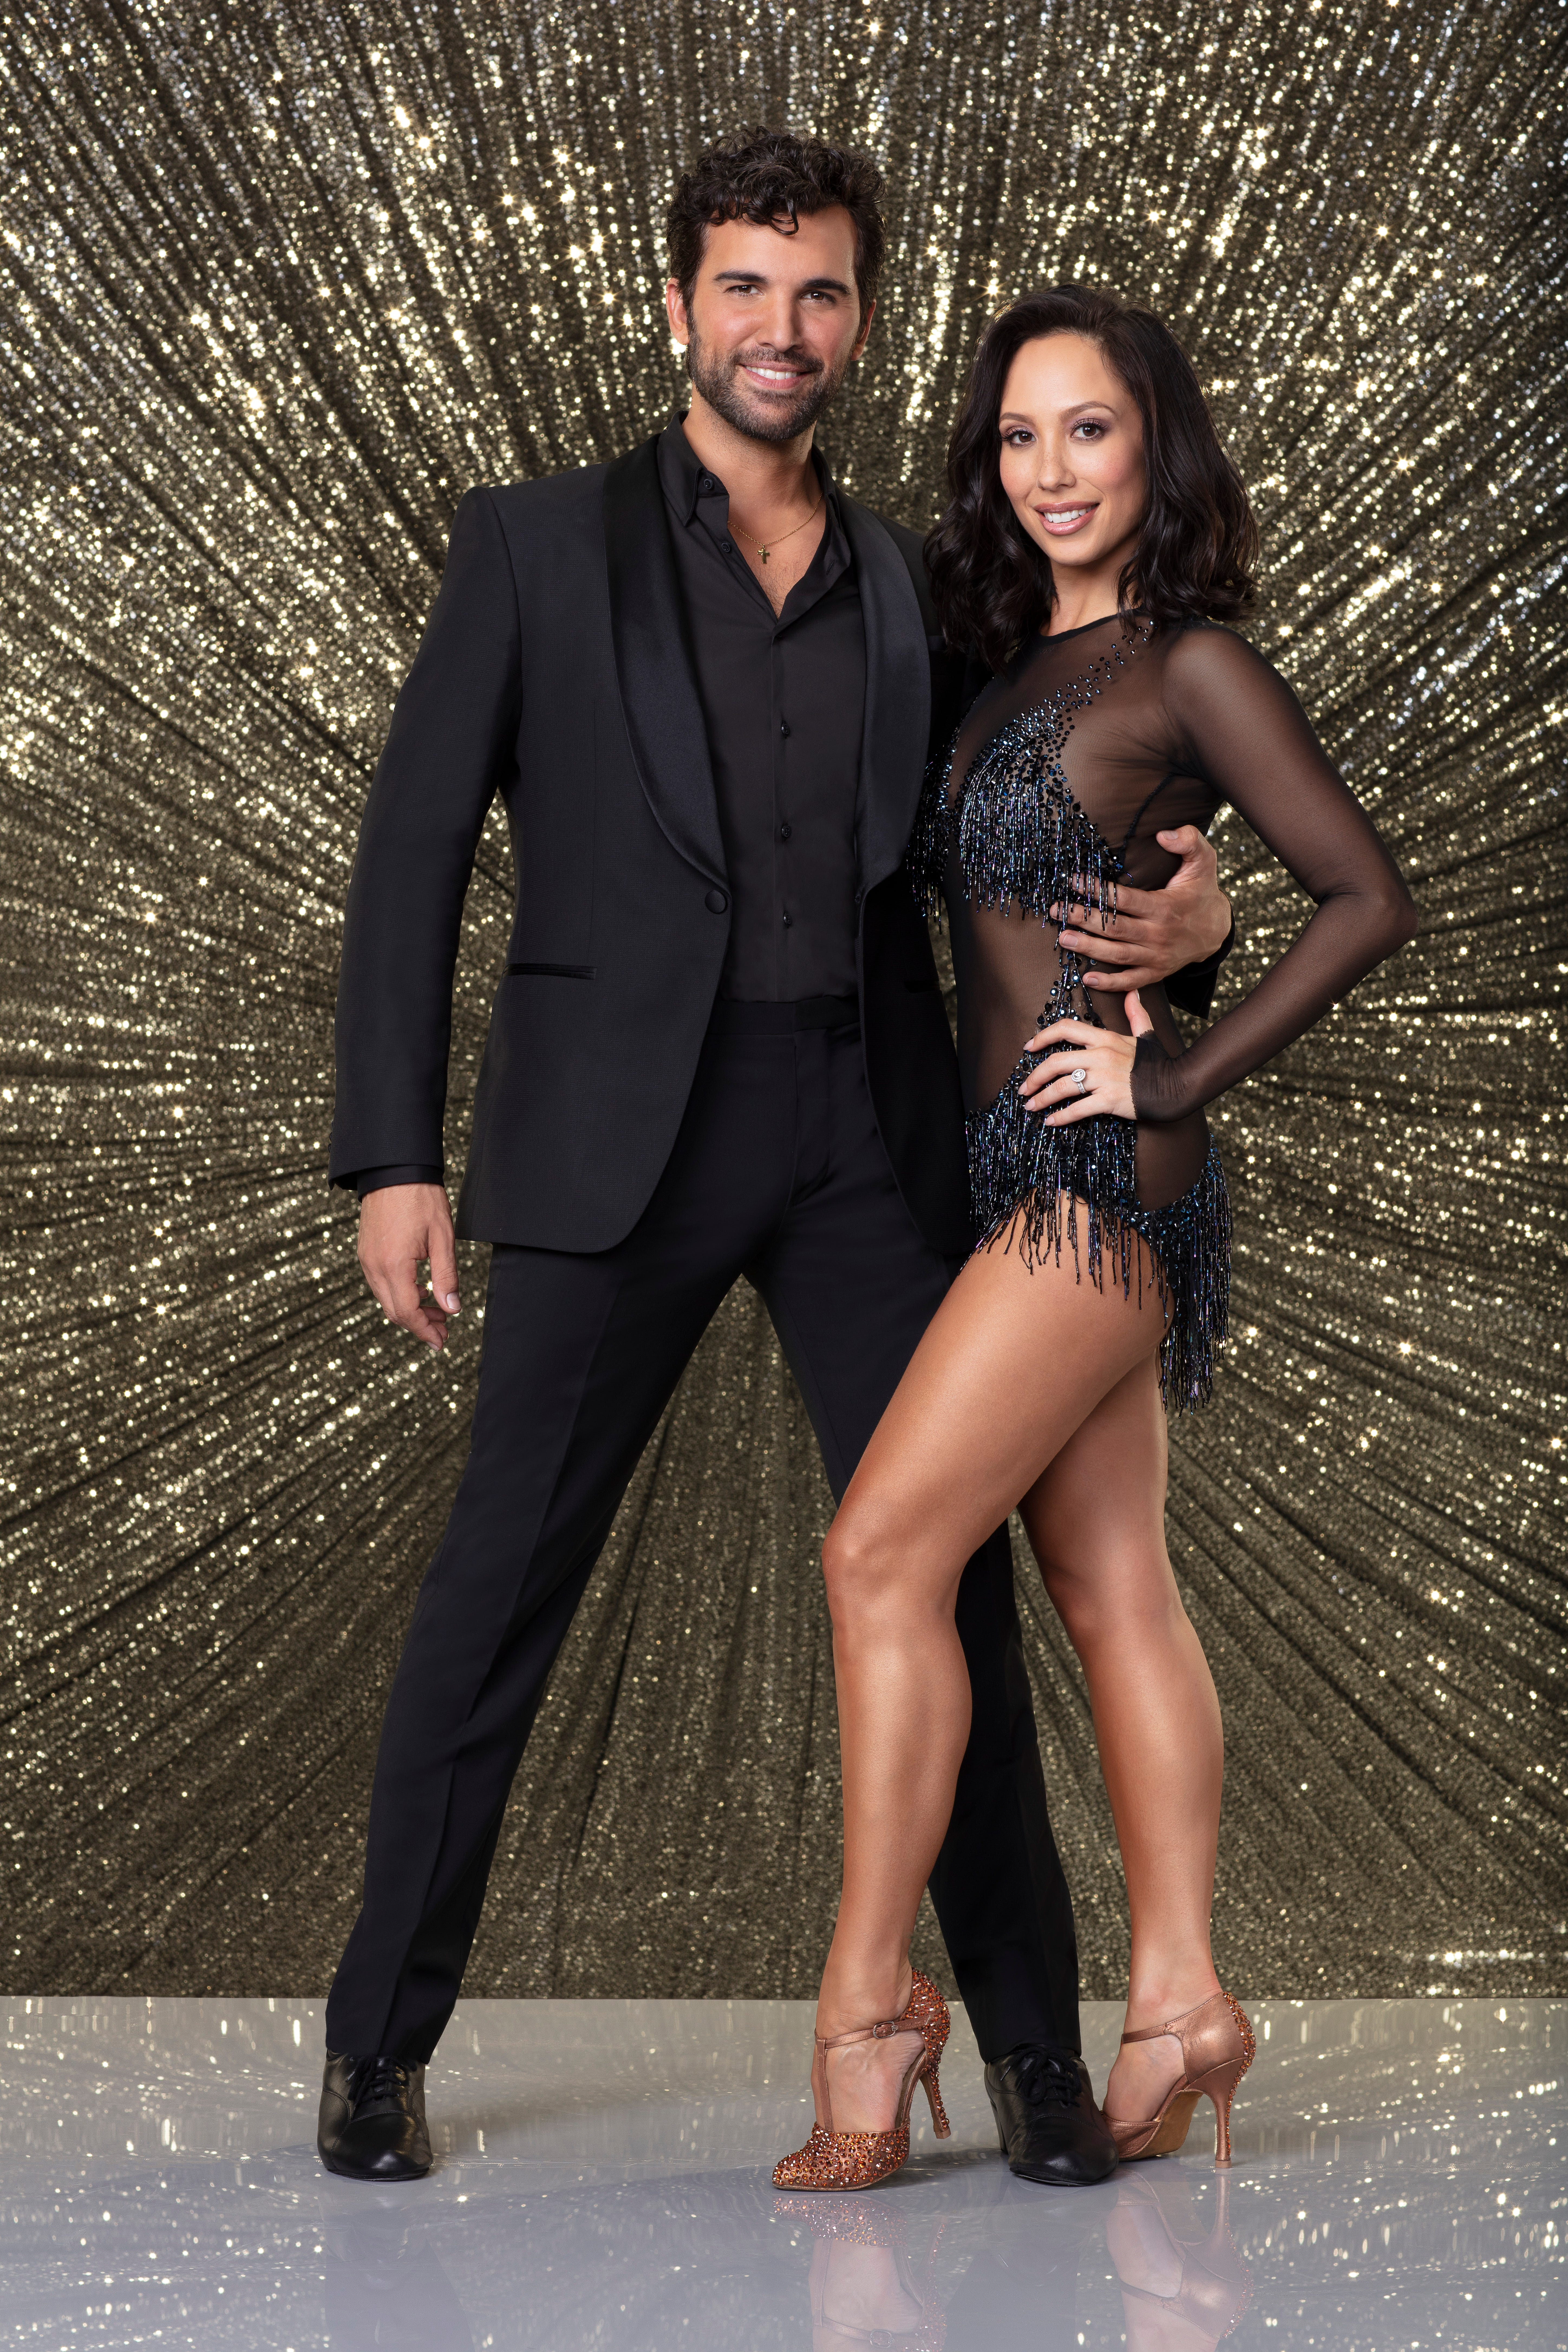 Dancing with the stars dating history